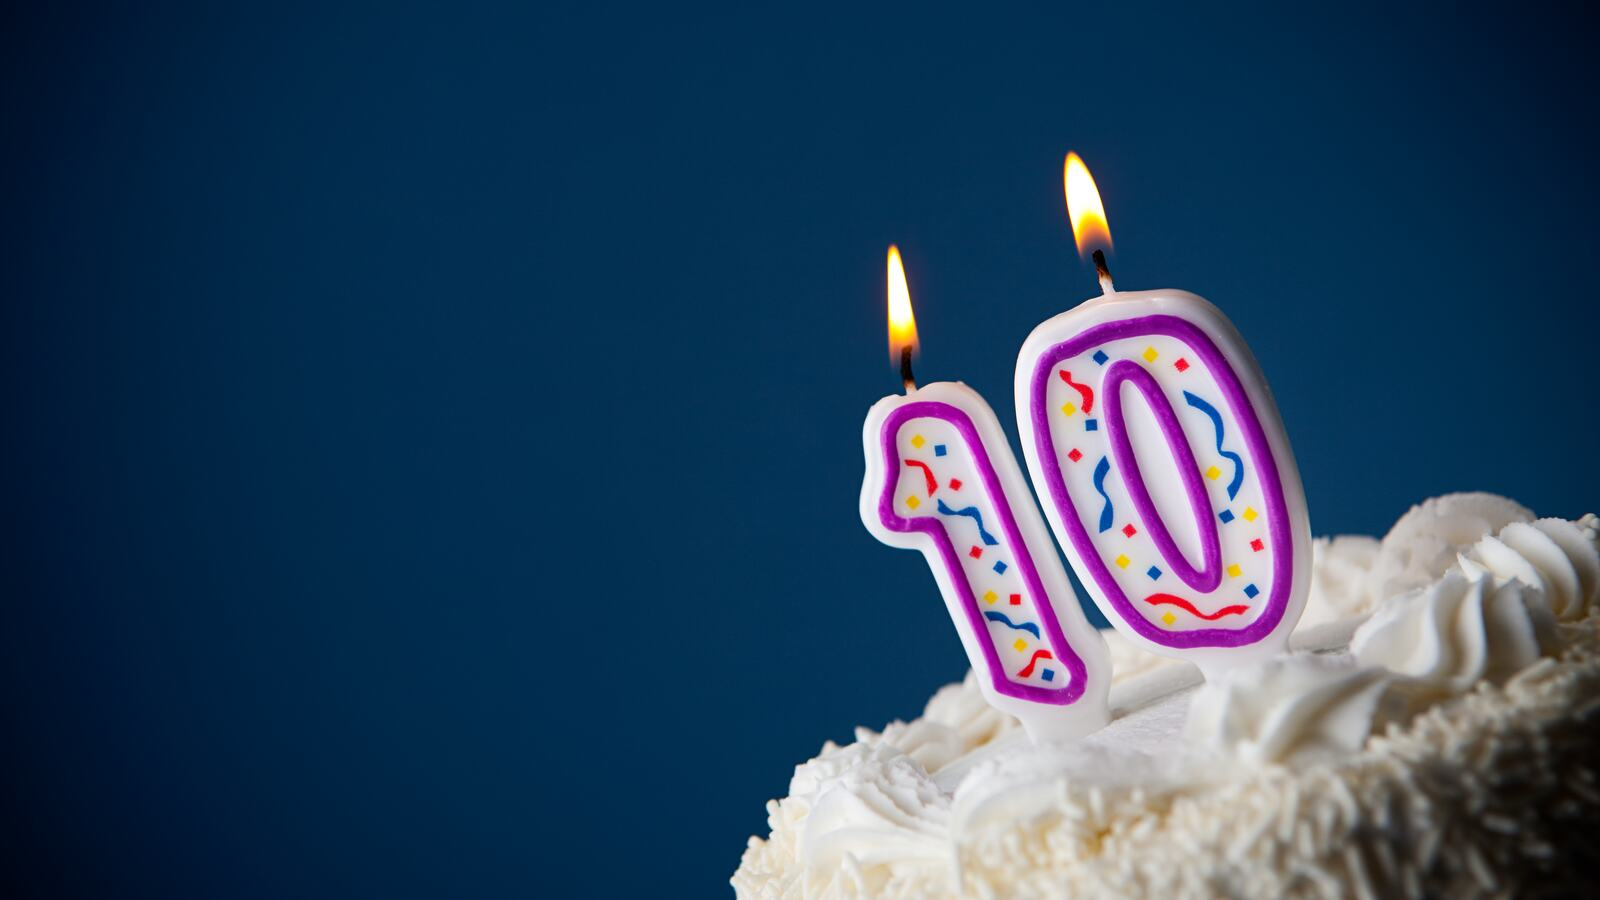 A birthday cake with a '10' candle on top